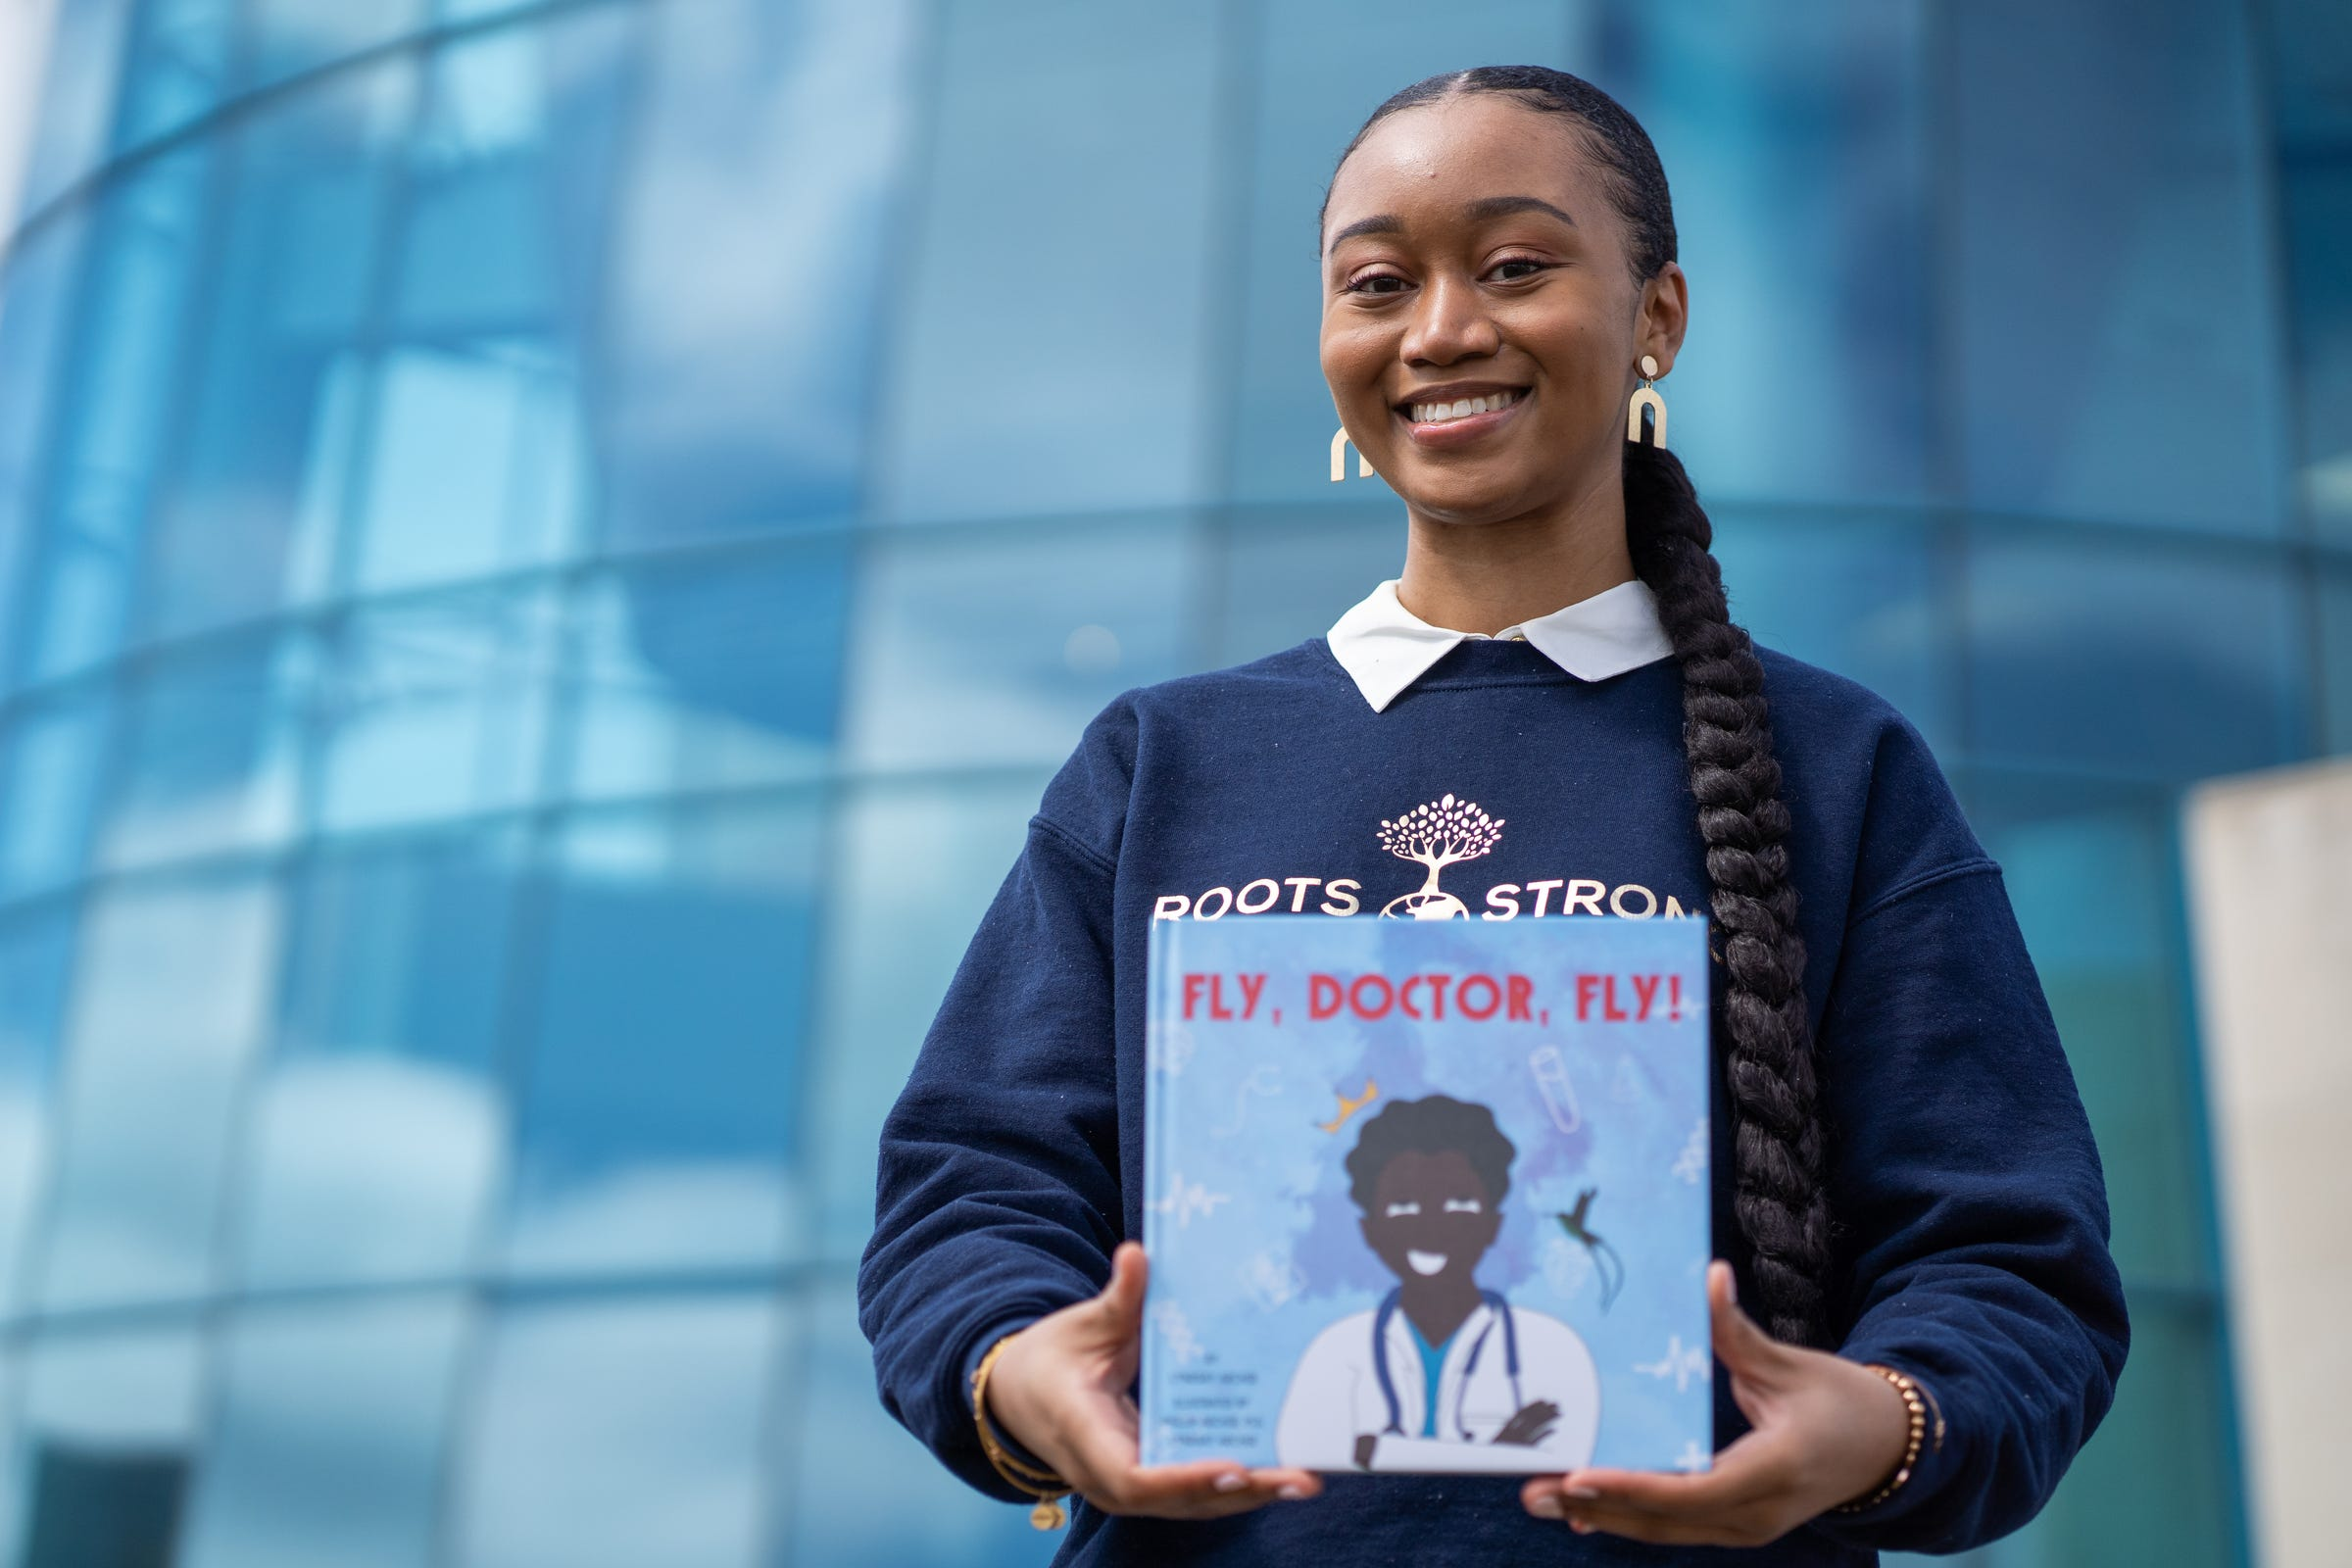 """Lyndsay Archer, 23, of Southfield shows the children's book she recently wrote titled, """"Fly, Doctor, Fly!"""" outside of the Southfield Public Library in Southfield on Friday, March 26, 2021. Archer co-illustrated the book with the inspiration behind it, her dad, Phillip. The book highlights Black and brown doctors. Archer is the founder of nonprofit, Roots Strong, which works toward serving youth locally and globally, centered around education, literacy and health.   Her nonprofit has built two libraries in Jamaica."""